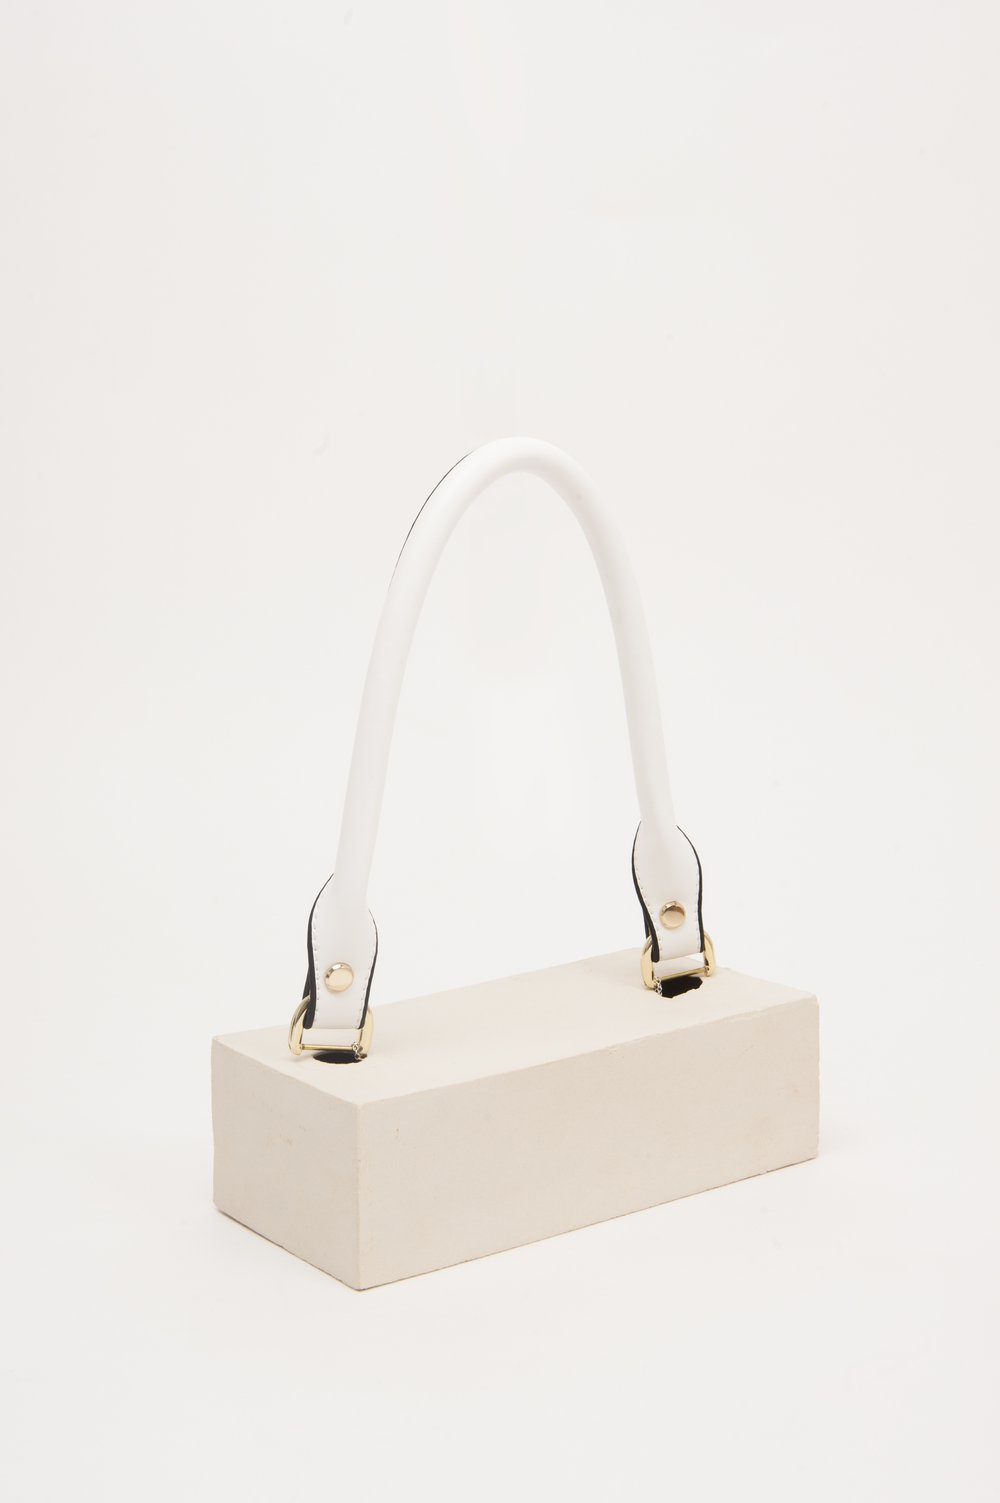 A WALL AND A BAG